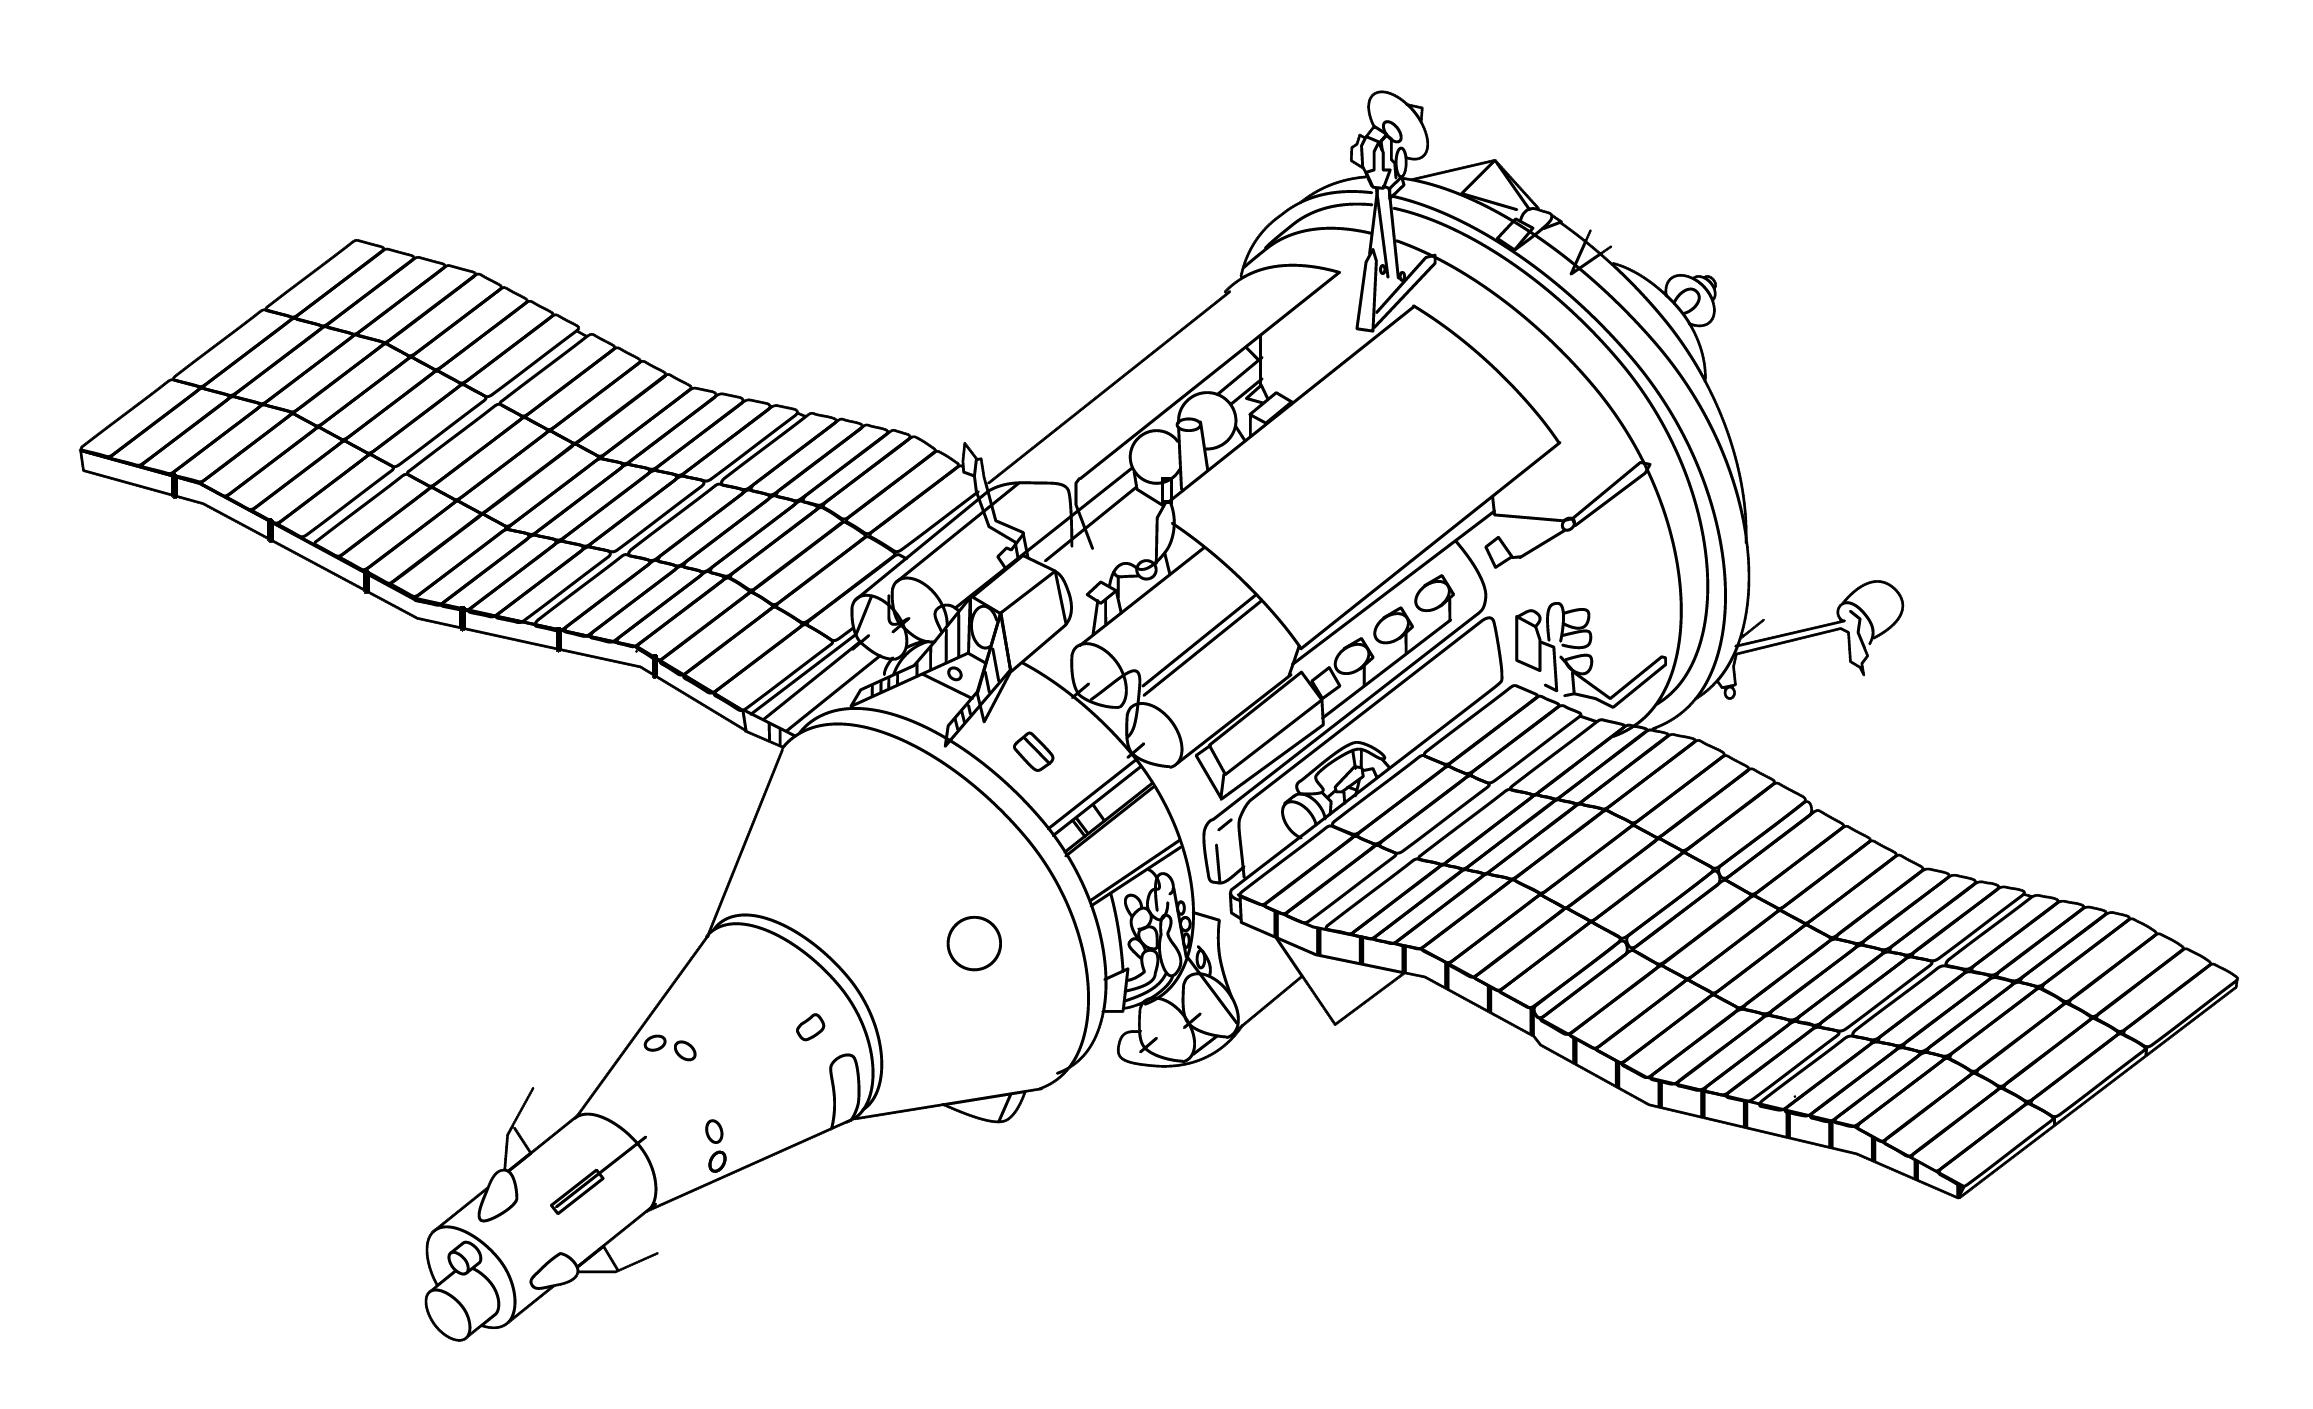 Spacecraft drawing iss. File tks png wikimedia